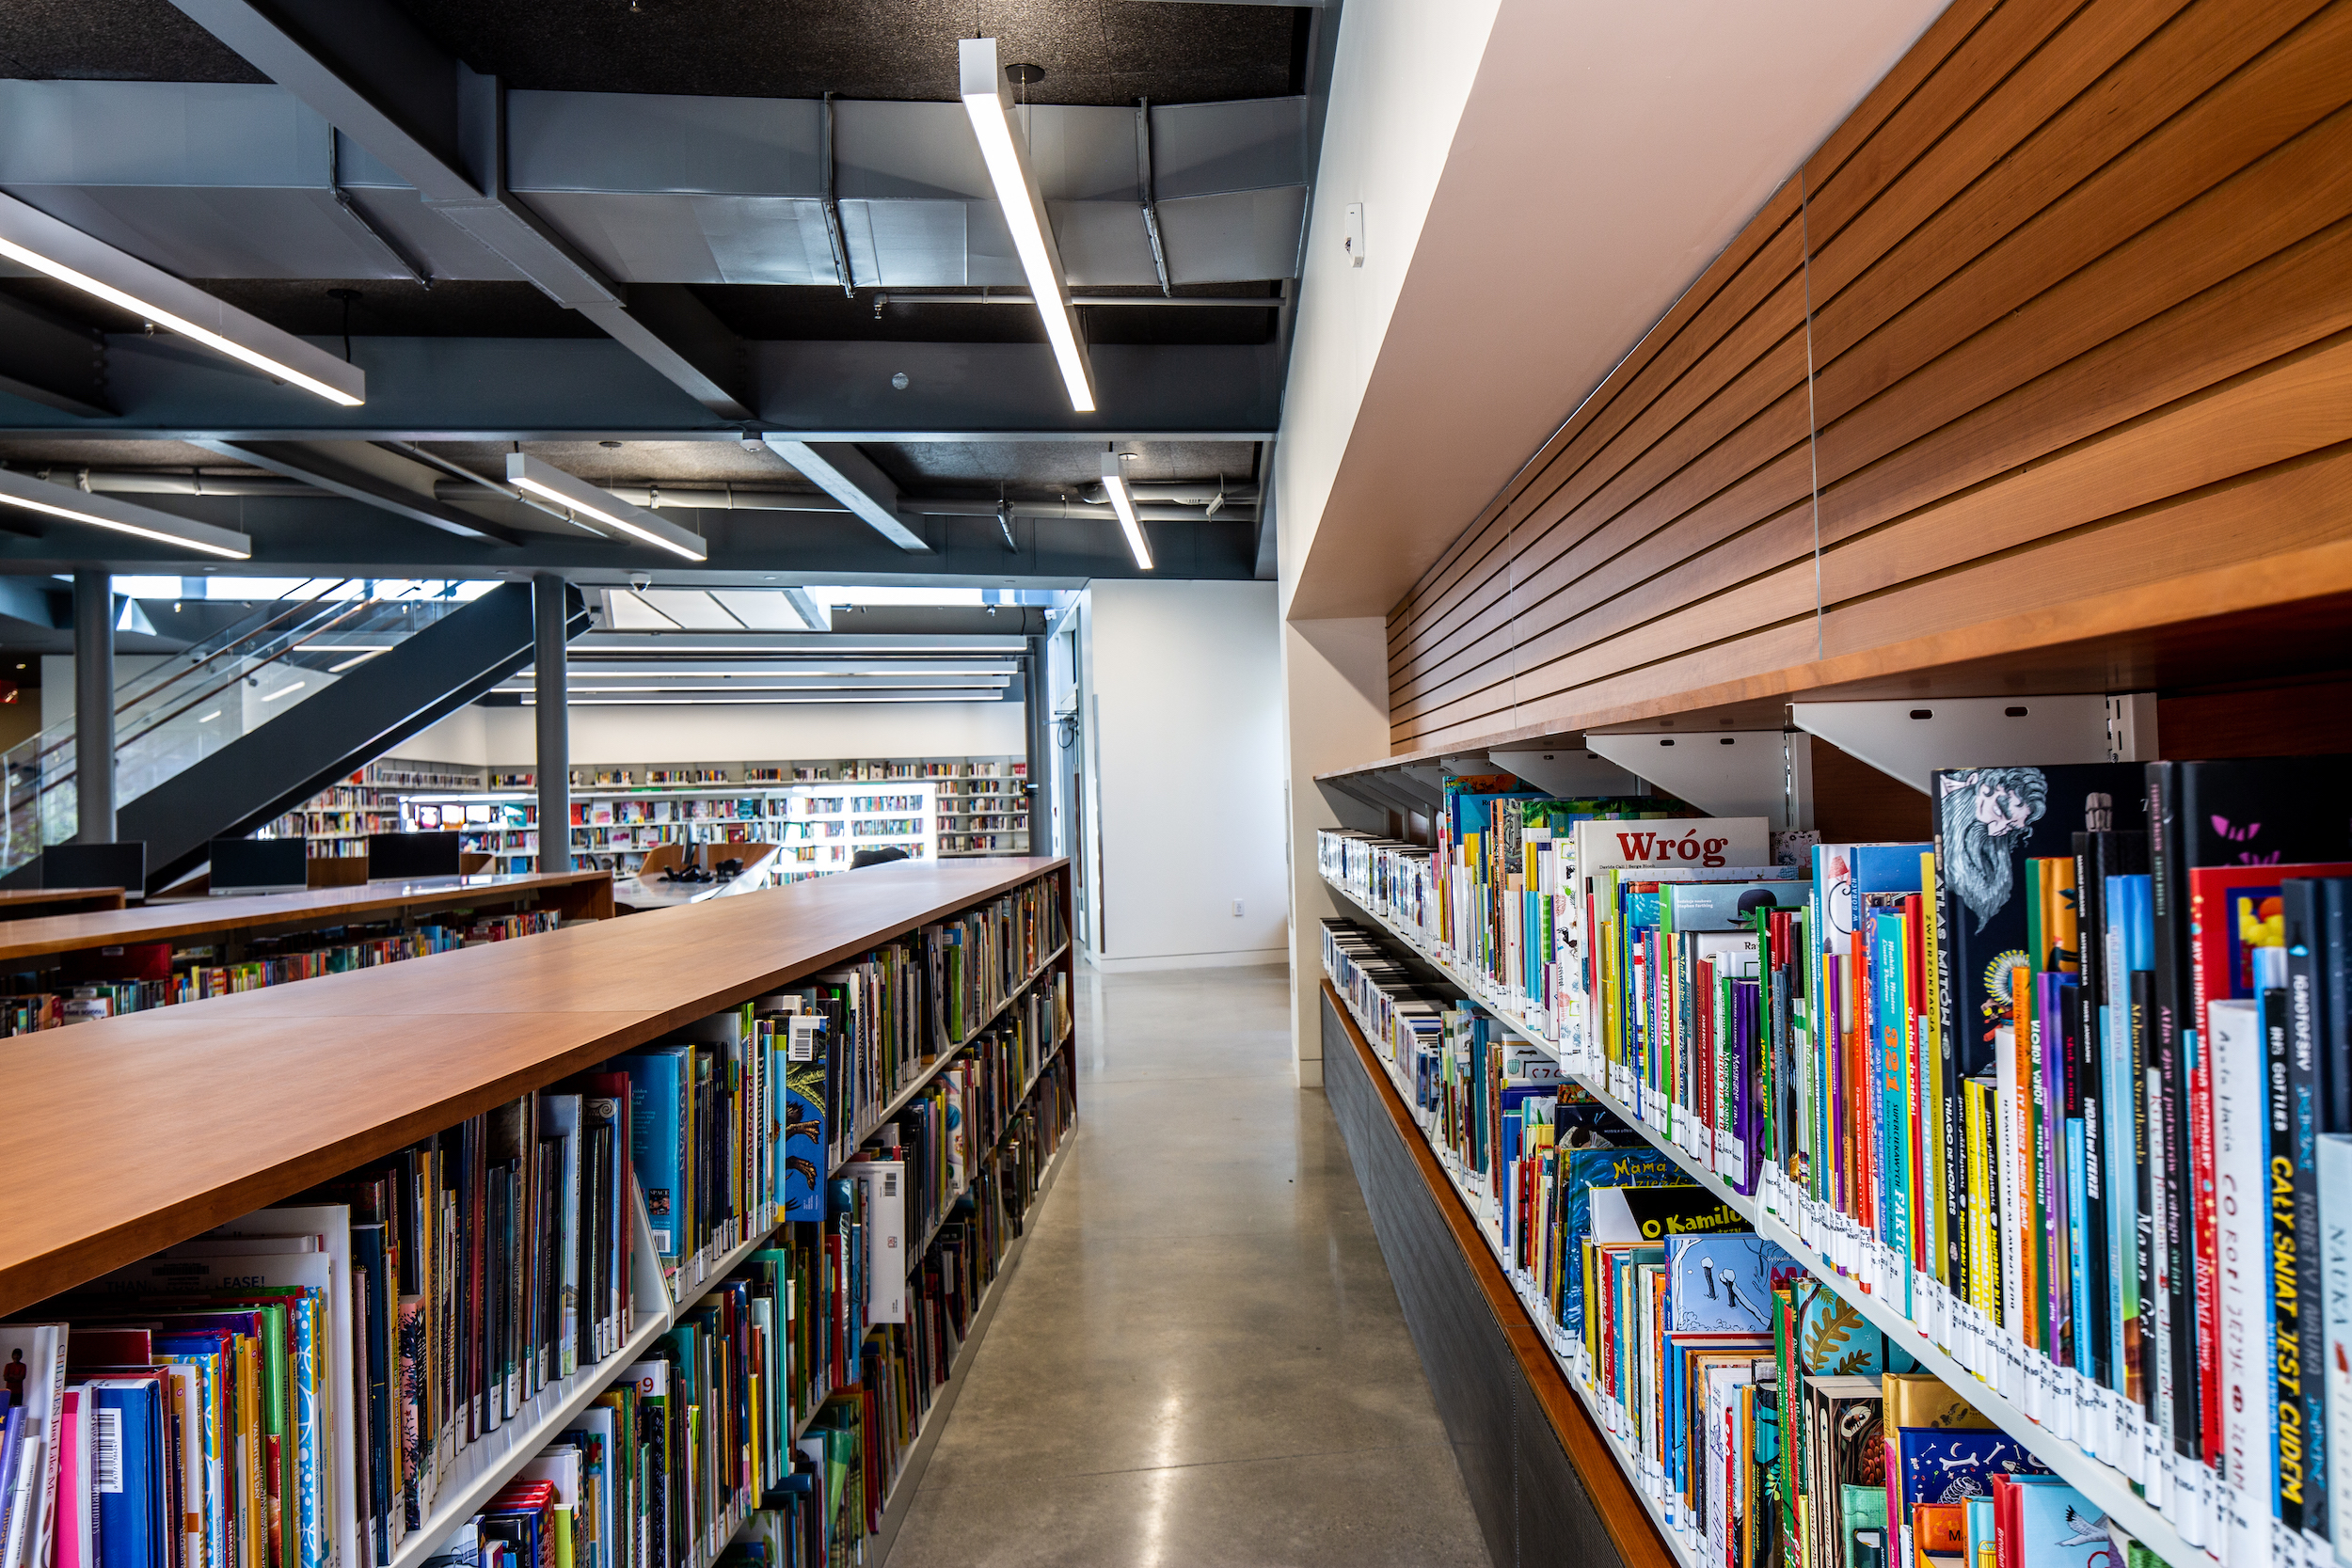 books on shelves in a children's library